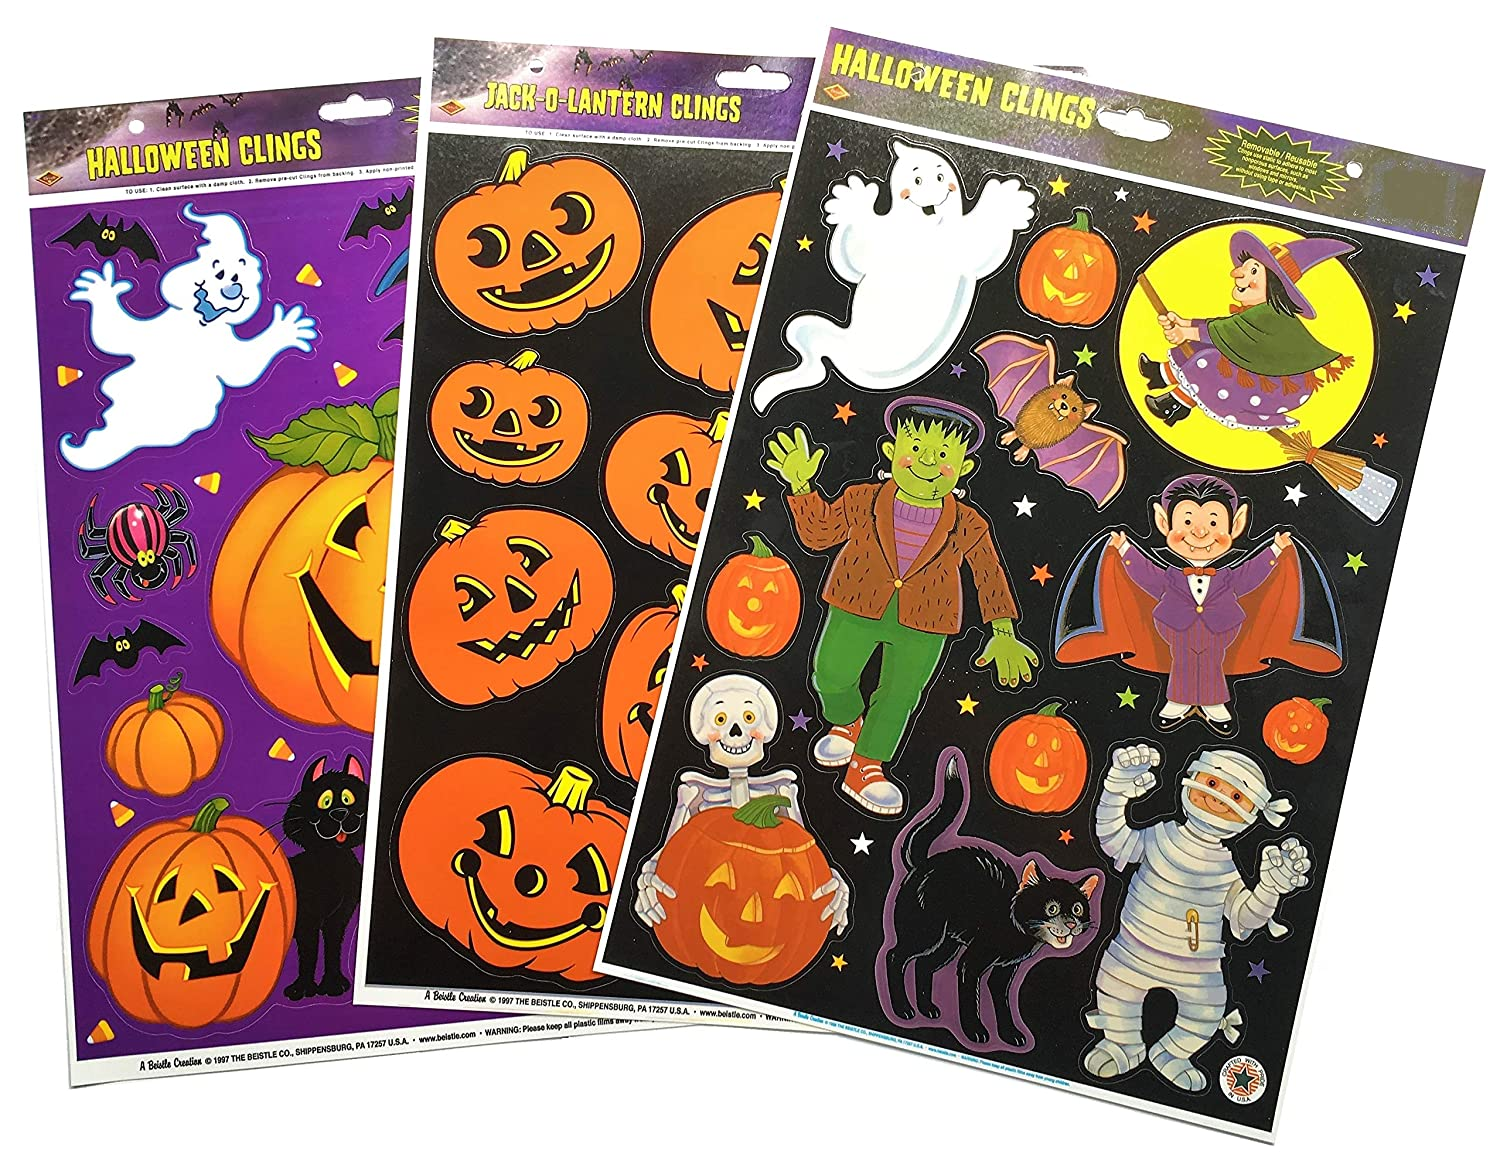 Beistle 3-Pack Halloween Window Sticker Clings Bundle Featuring Pumpkins, Ghosts & More